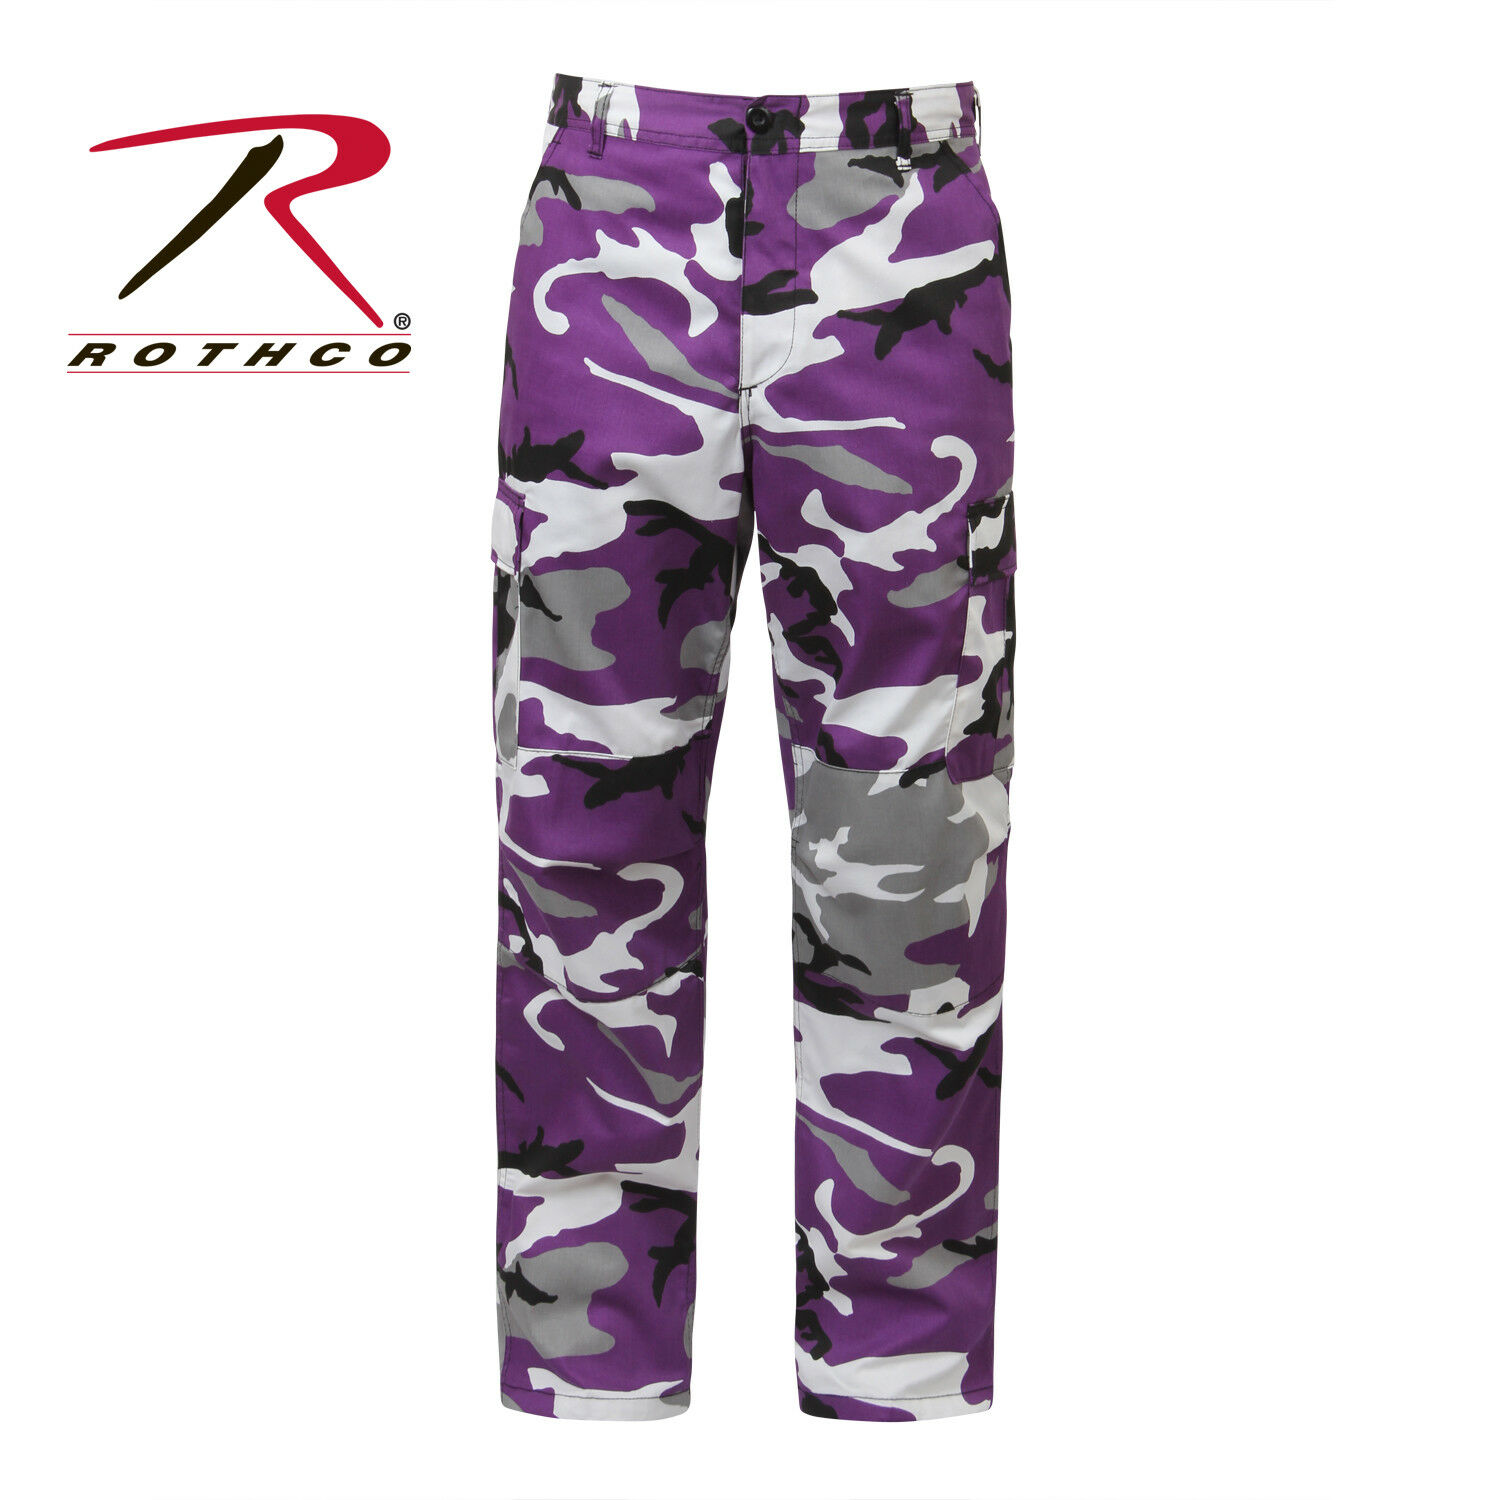 redhco Tactical BDU  Pants Ultra purple Camo  official authorization